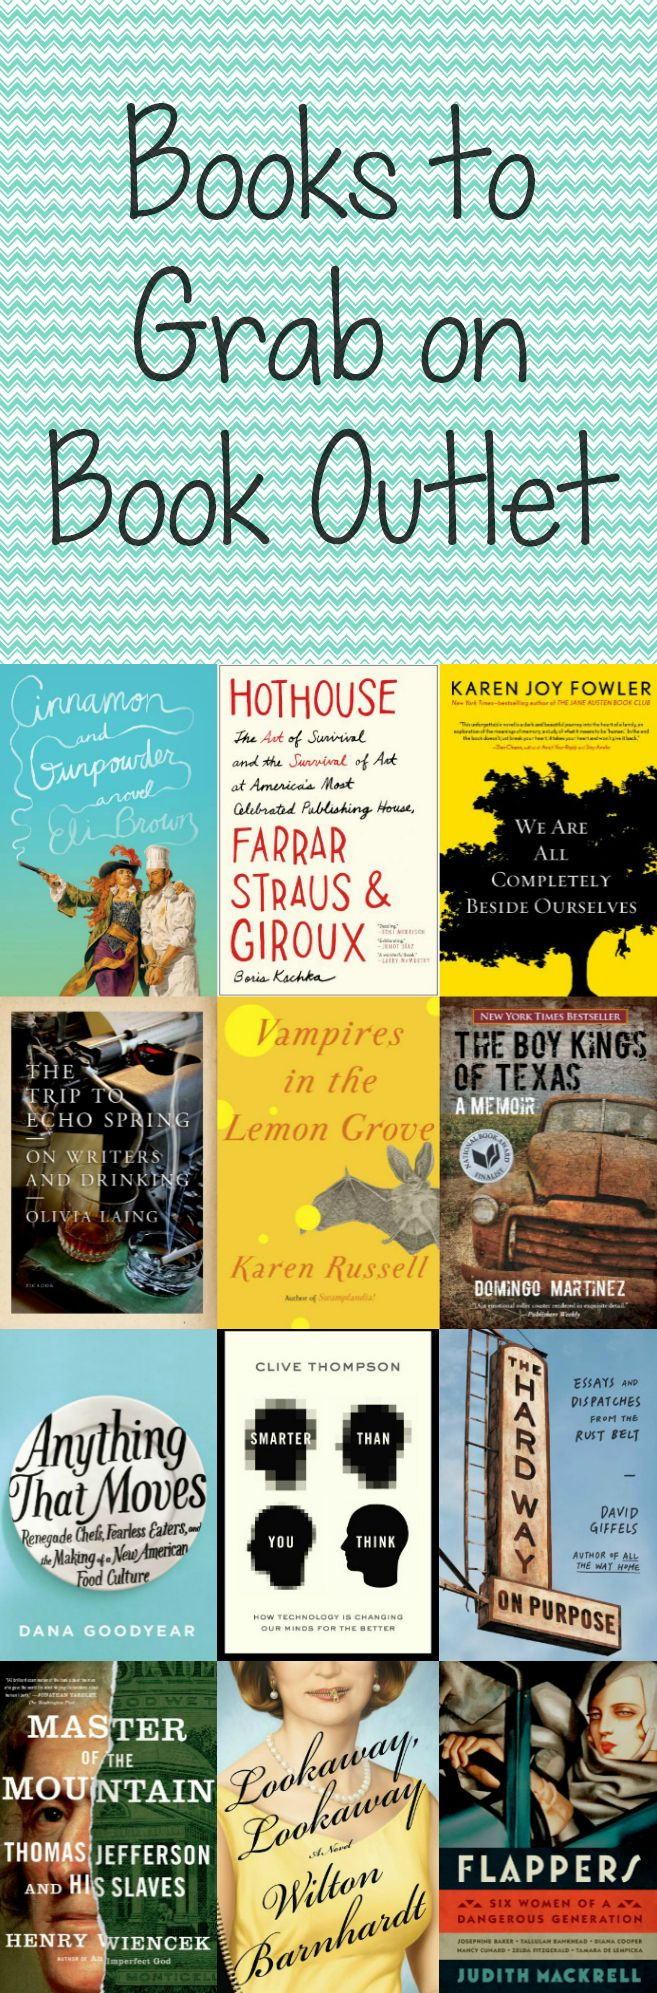 Best Books to Grab From Book Outlet - Under $8